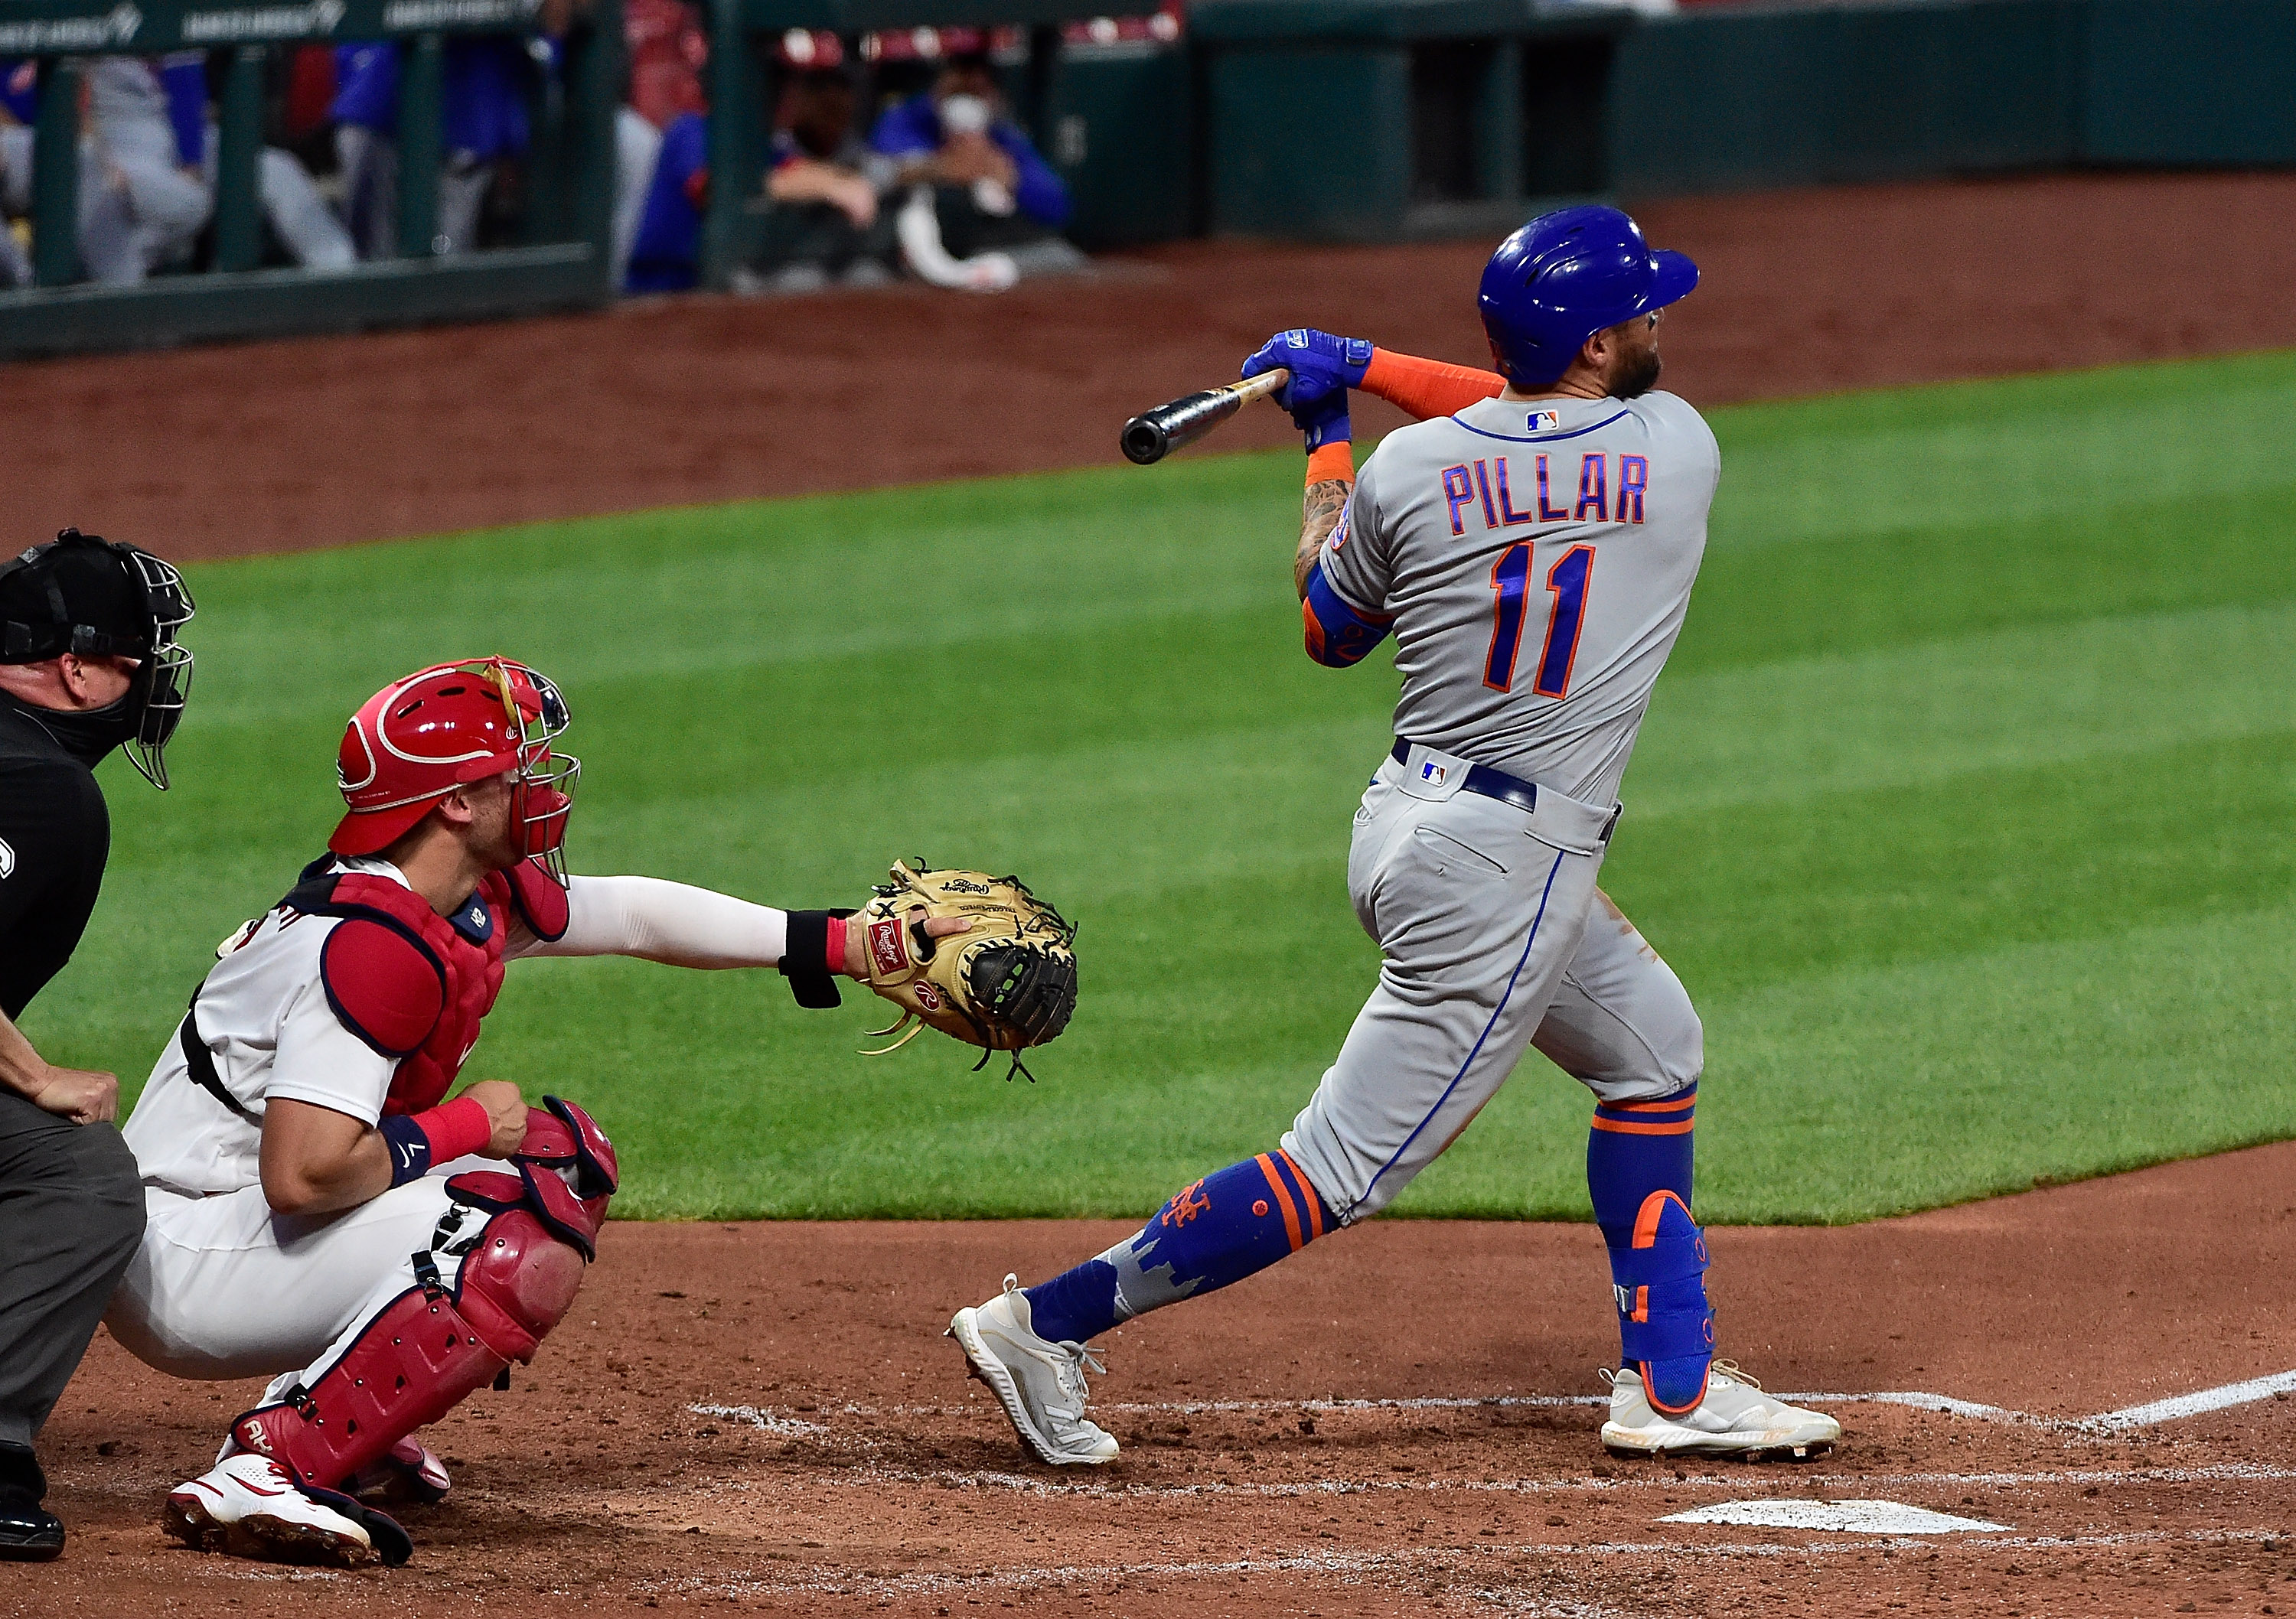 5/4/21 Game Preview: New York Mets at St. Louis Cardinals